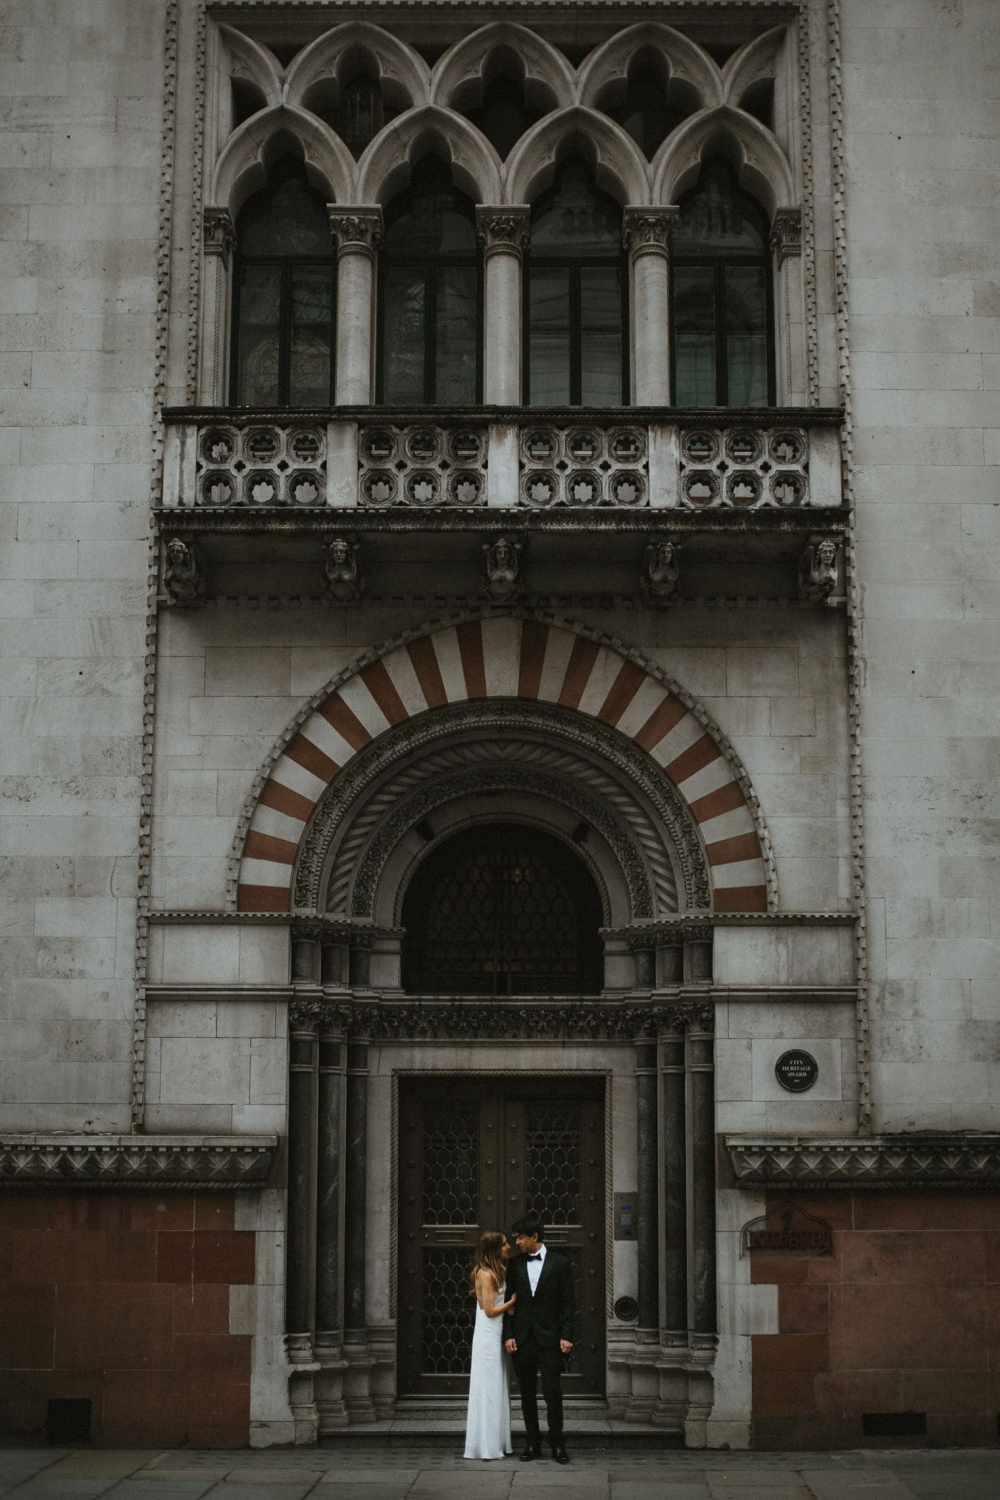 Bride and groom outside beautiful building for wedding portraits in London